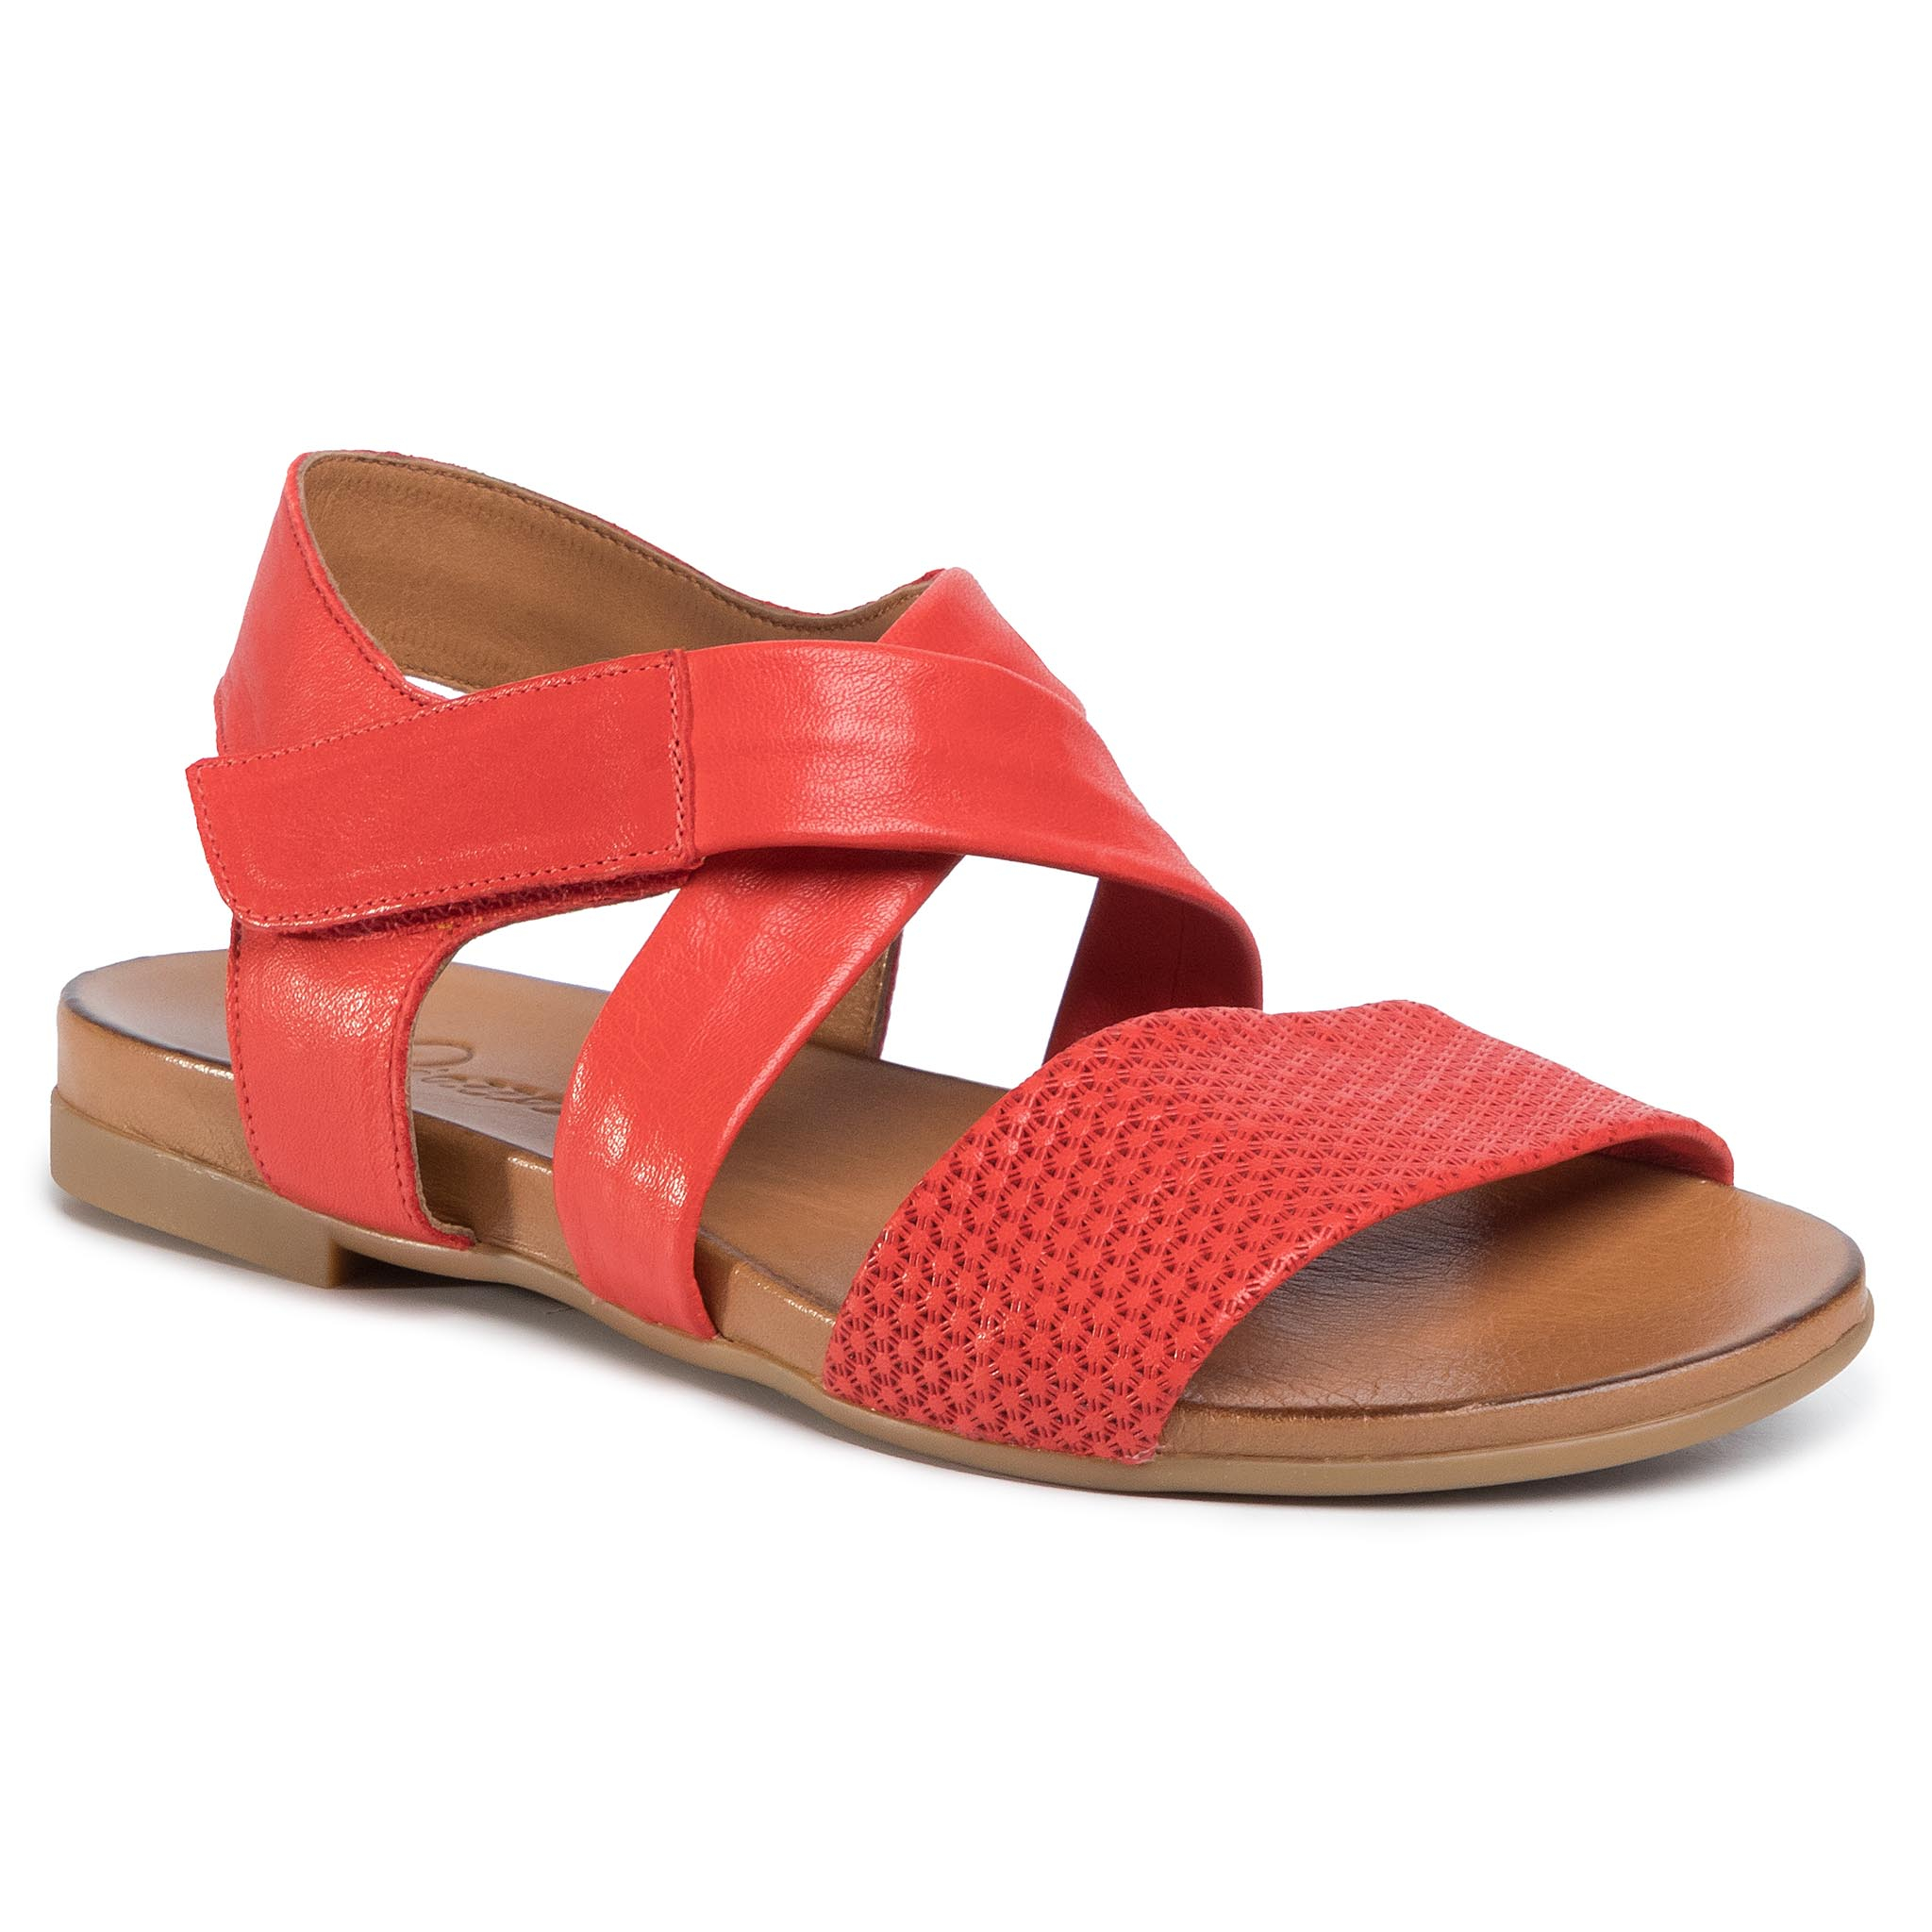 Sandale PIAZZA - 911005 Rot